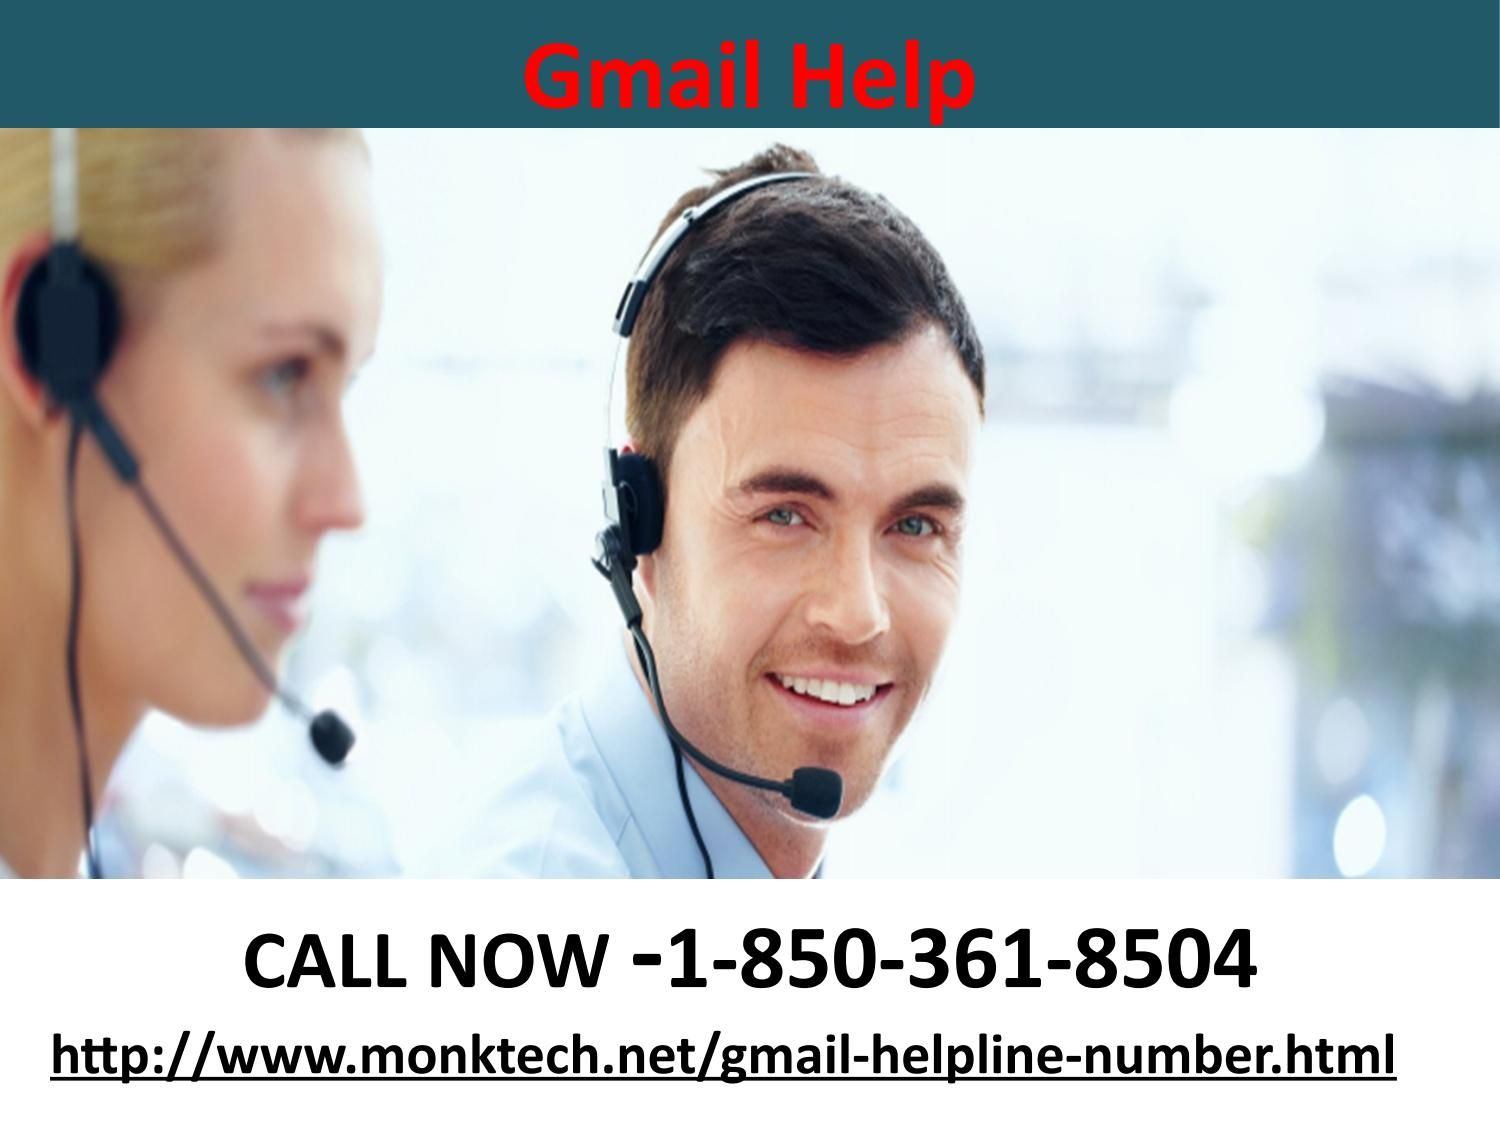 Immediate gmail help for all accounts is possible now 1